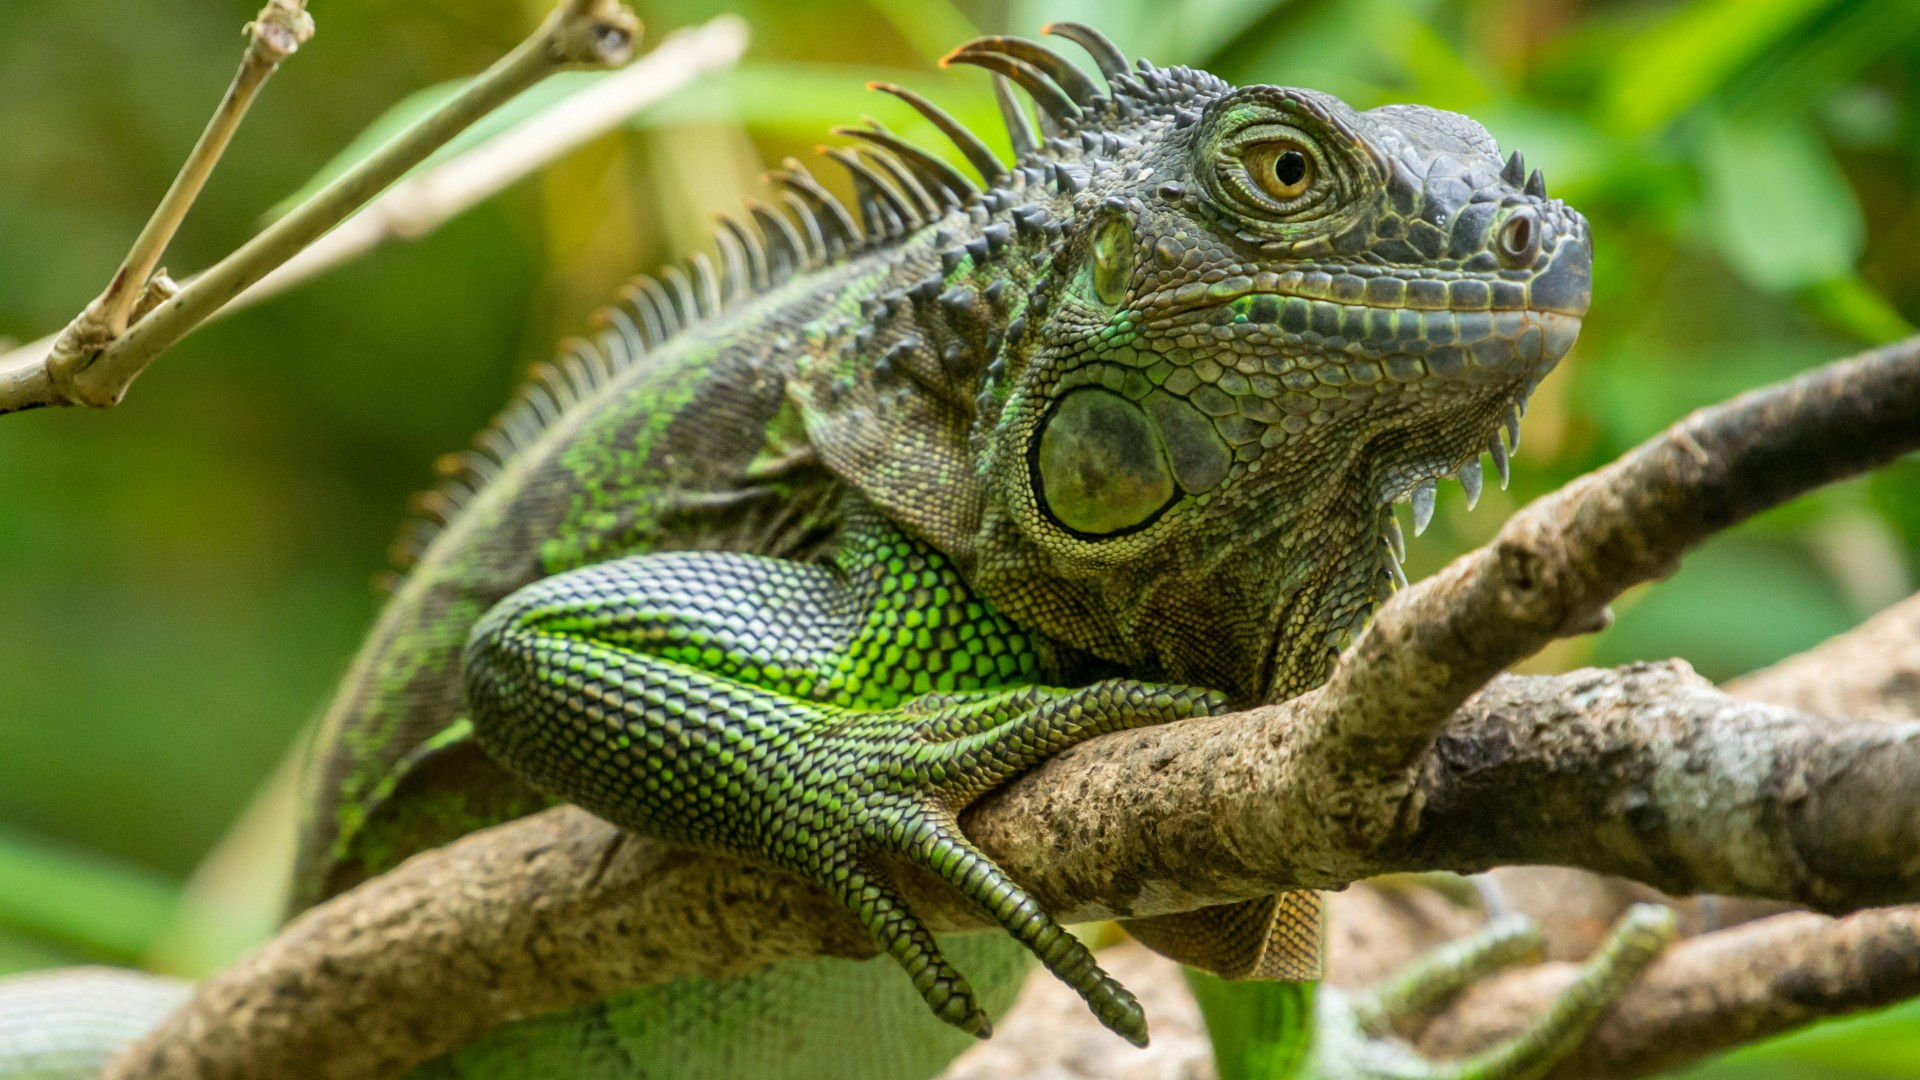 iguana-lafortuna-costarica